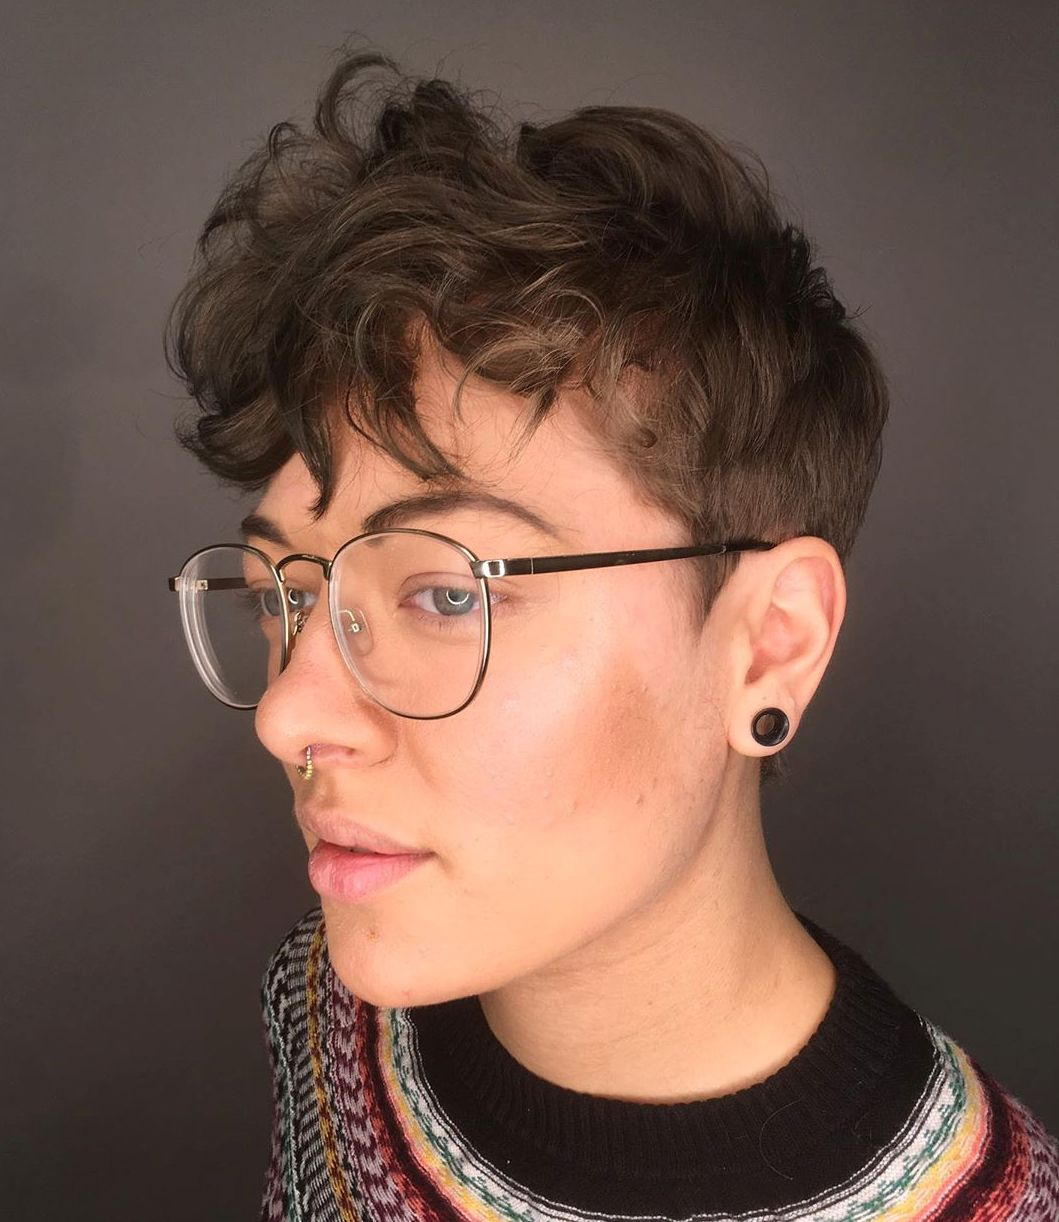 Short Sides Cut for Curly Hair